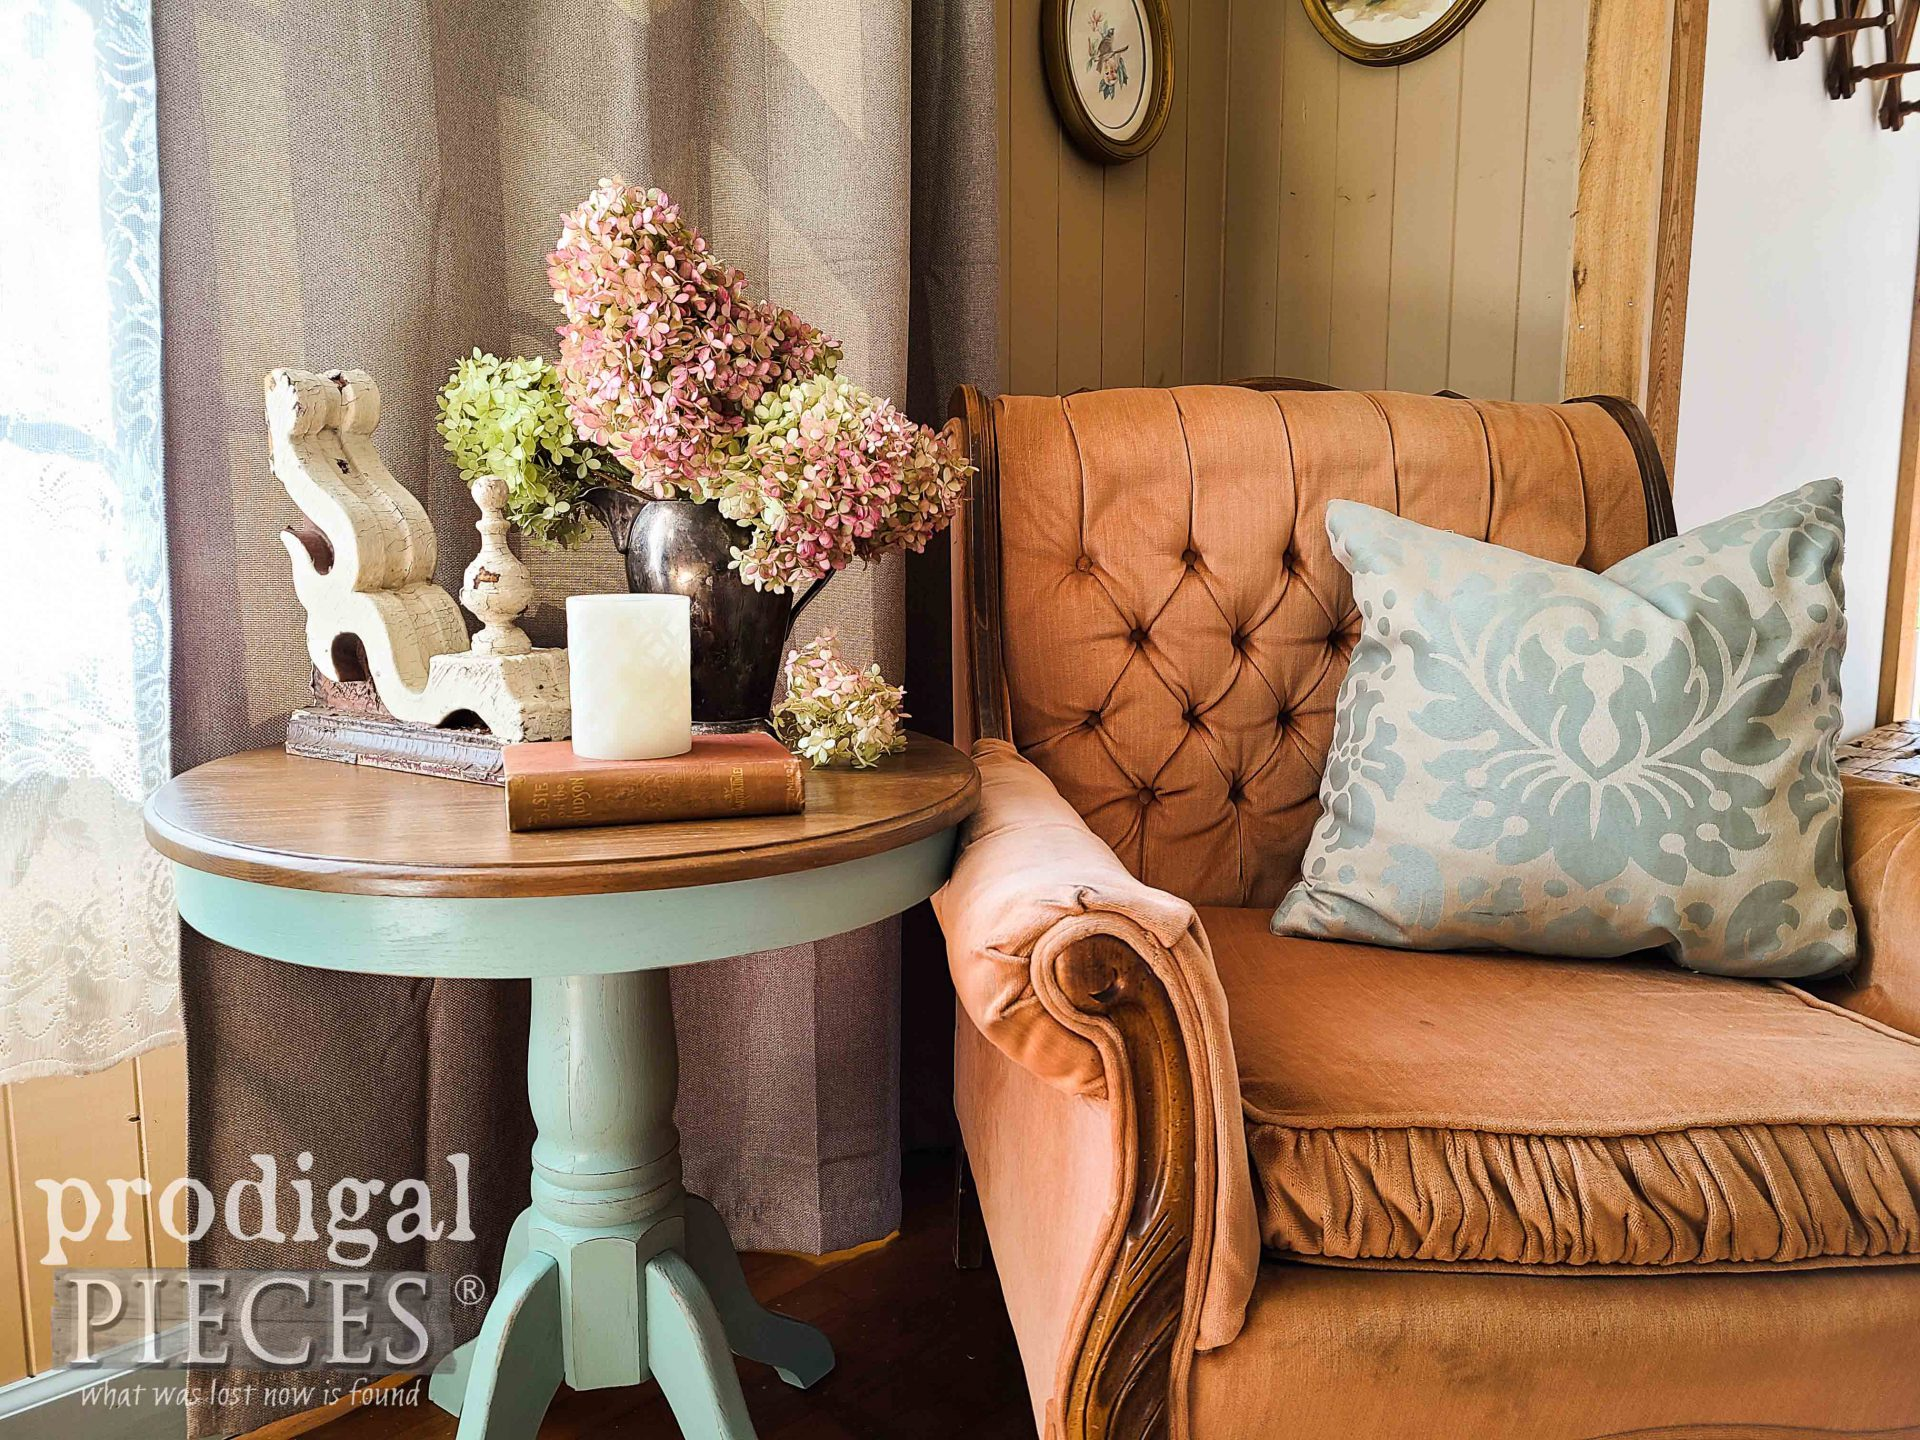 Farmhouse Style Vignette with Oak Pedestal Table by Larissa of Prodigal Pieces by Larissa of Prodigal Pieces | prodigalpieces.com #prodigalpieces #farmhouse #home #homedecor